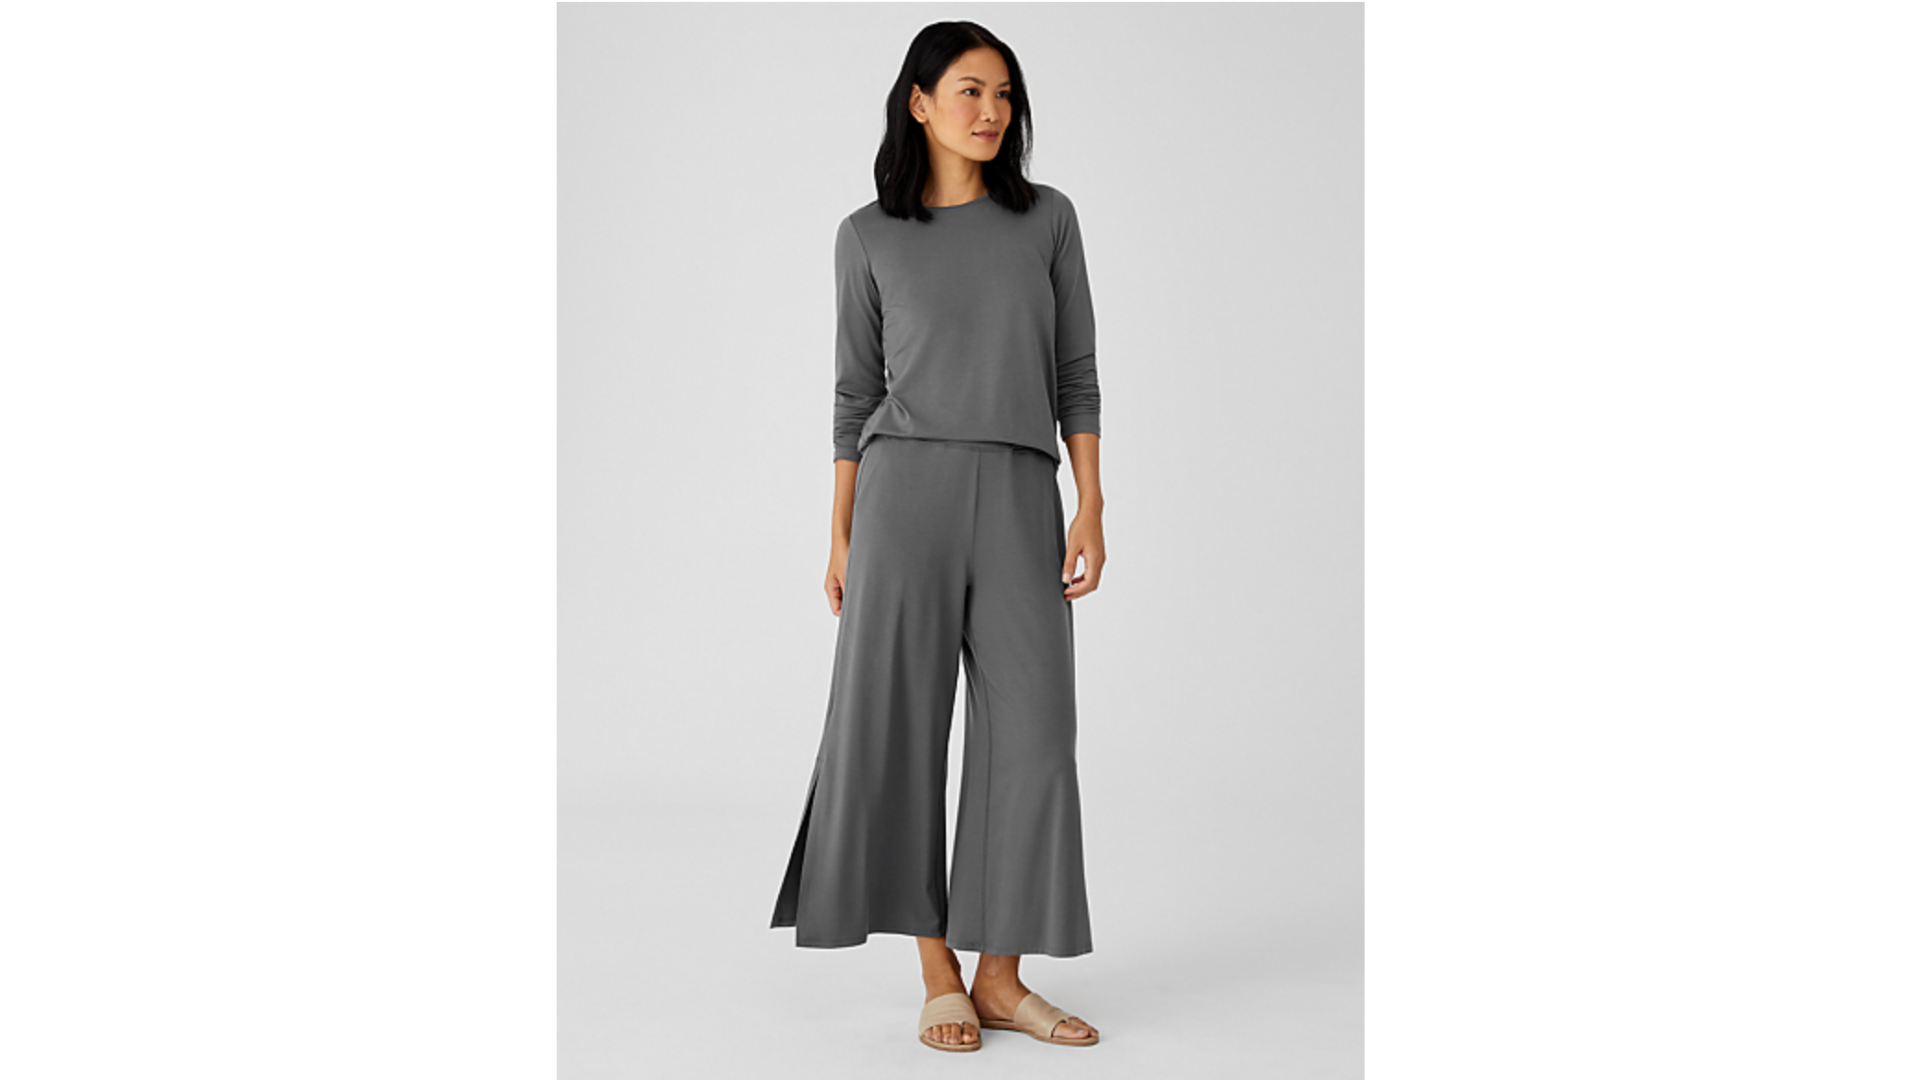 Eileen Fisher best clothing stores for women over 50